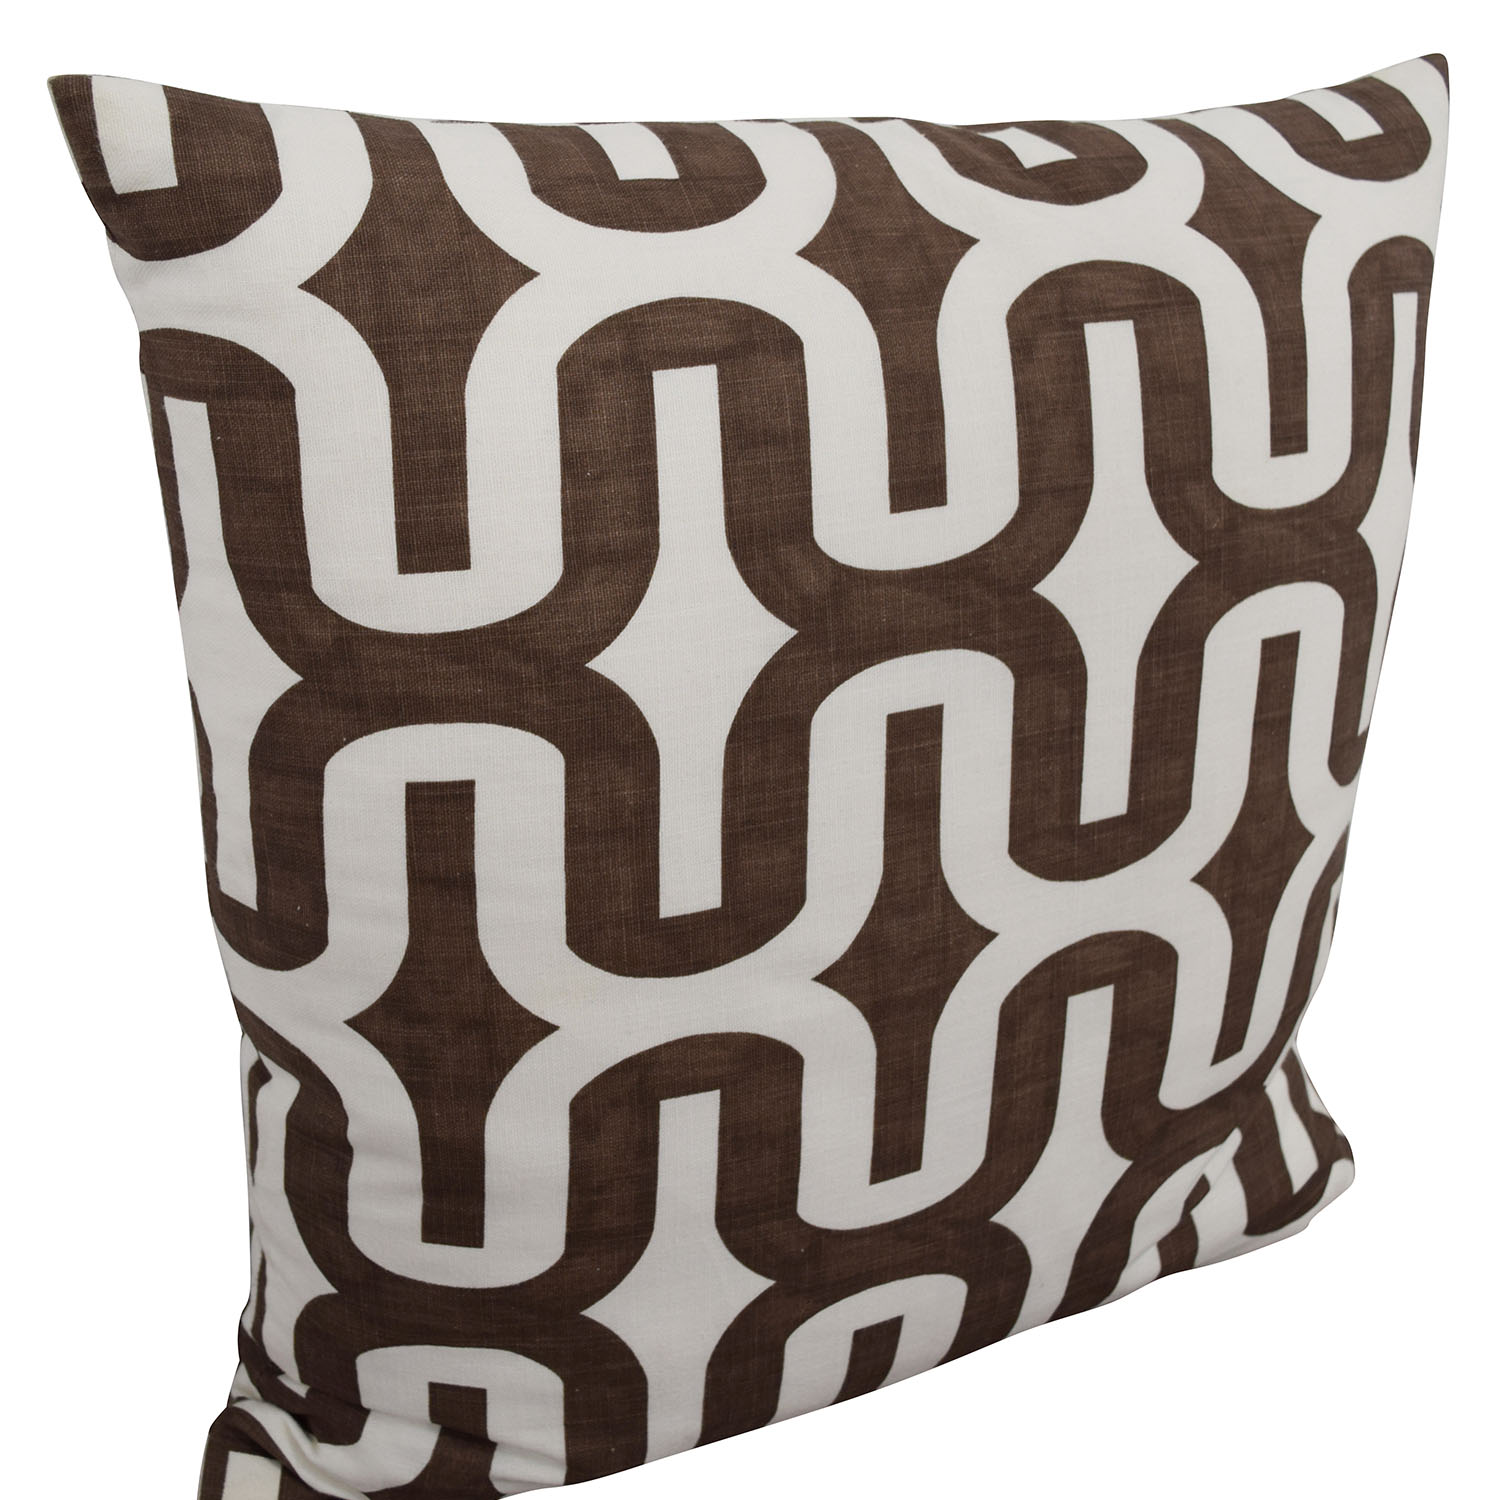 Brown and White Decorative Toss Pillows